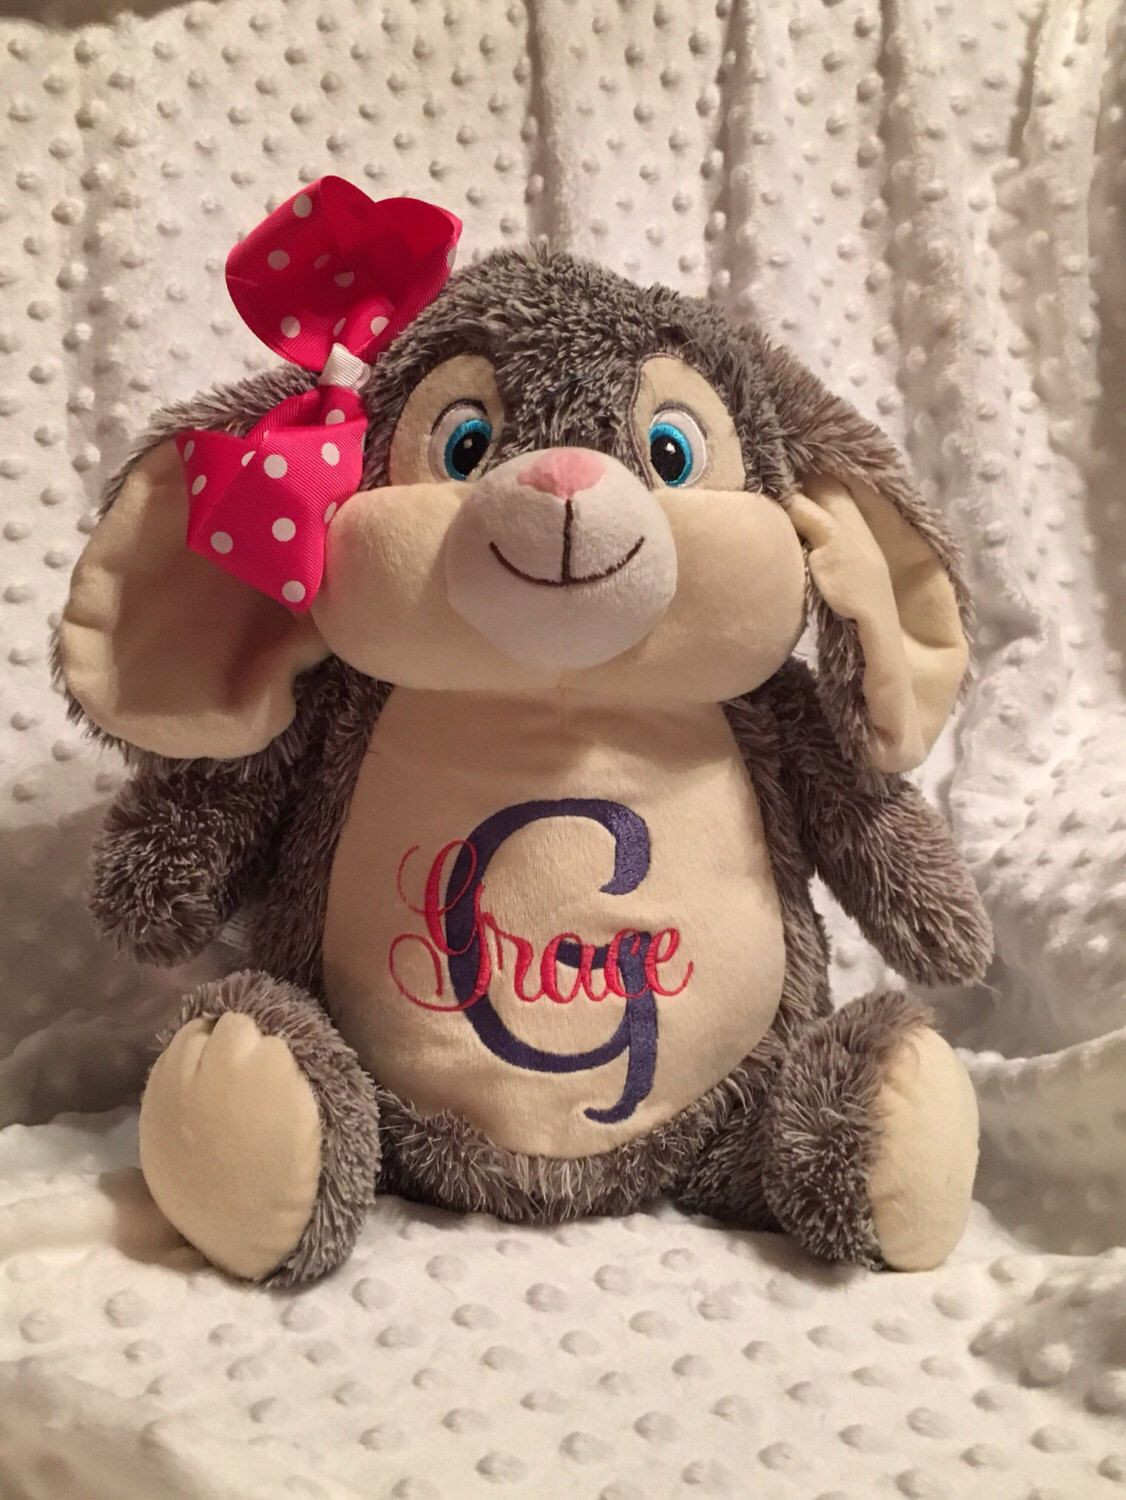 Christian Baby Gifts Personalized  Pin by GiGis KiDs Creations on Easter personalized